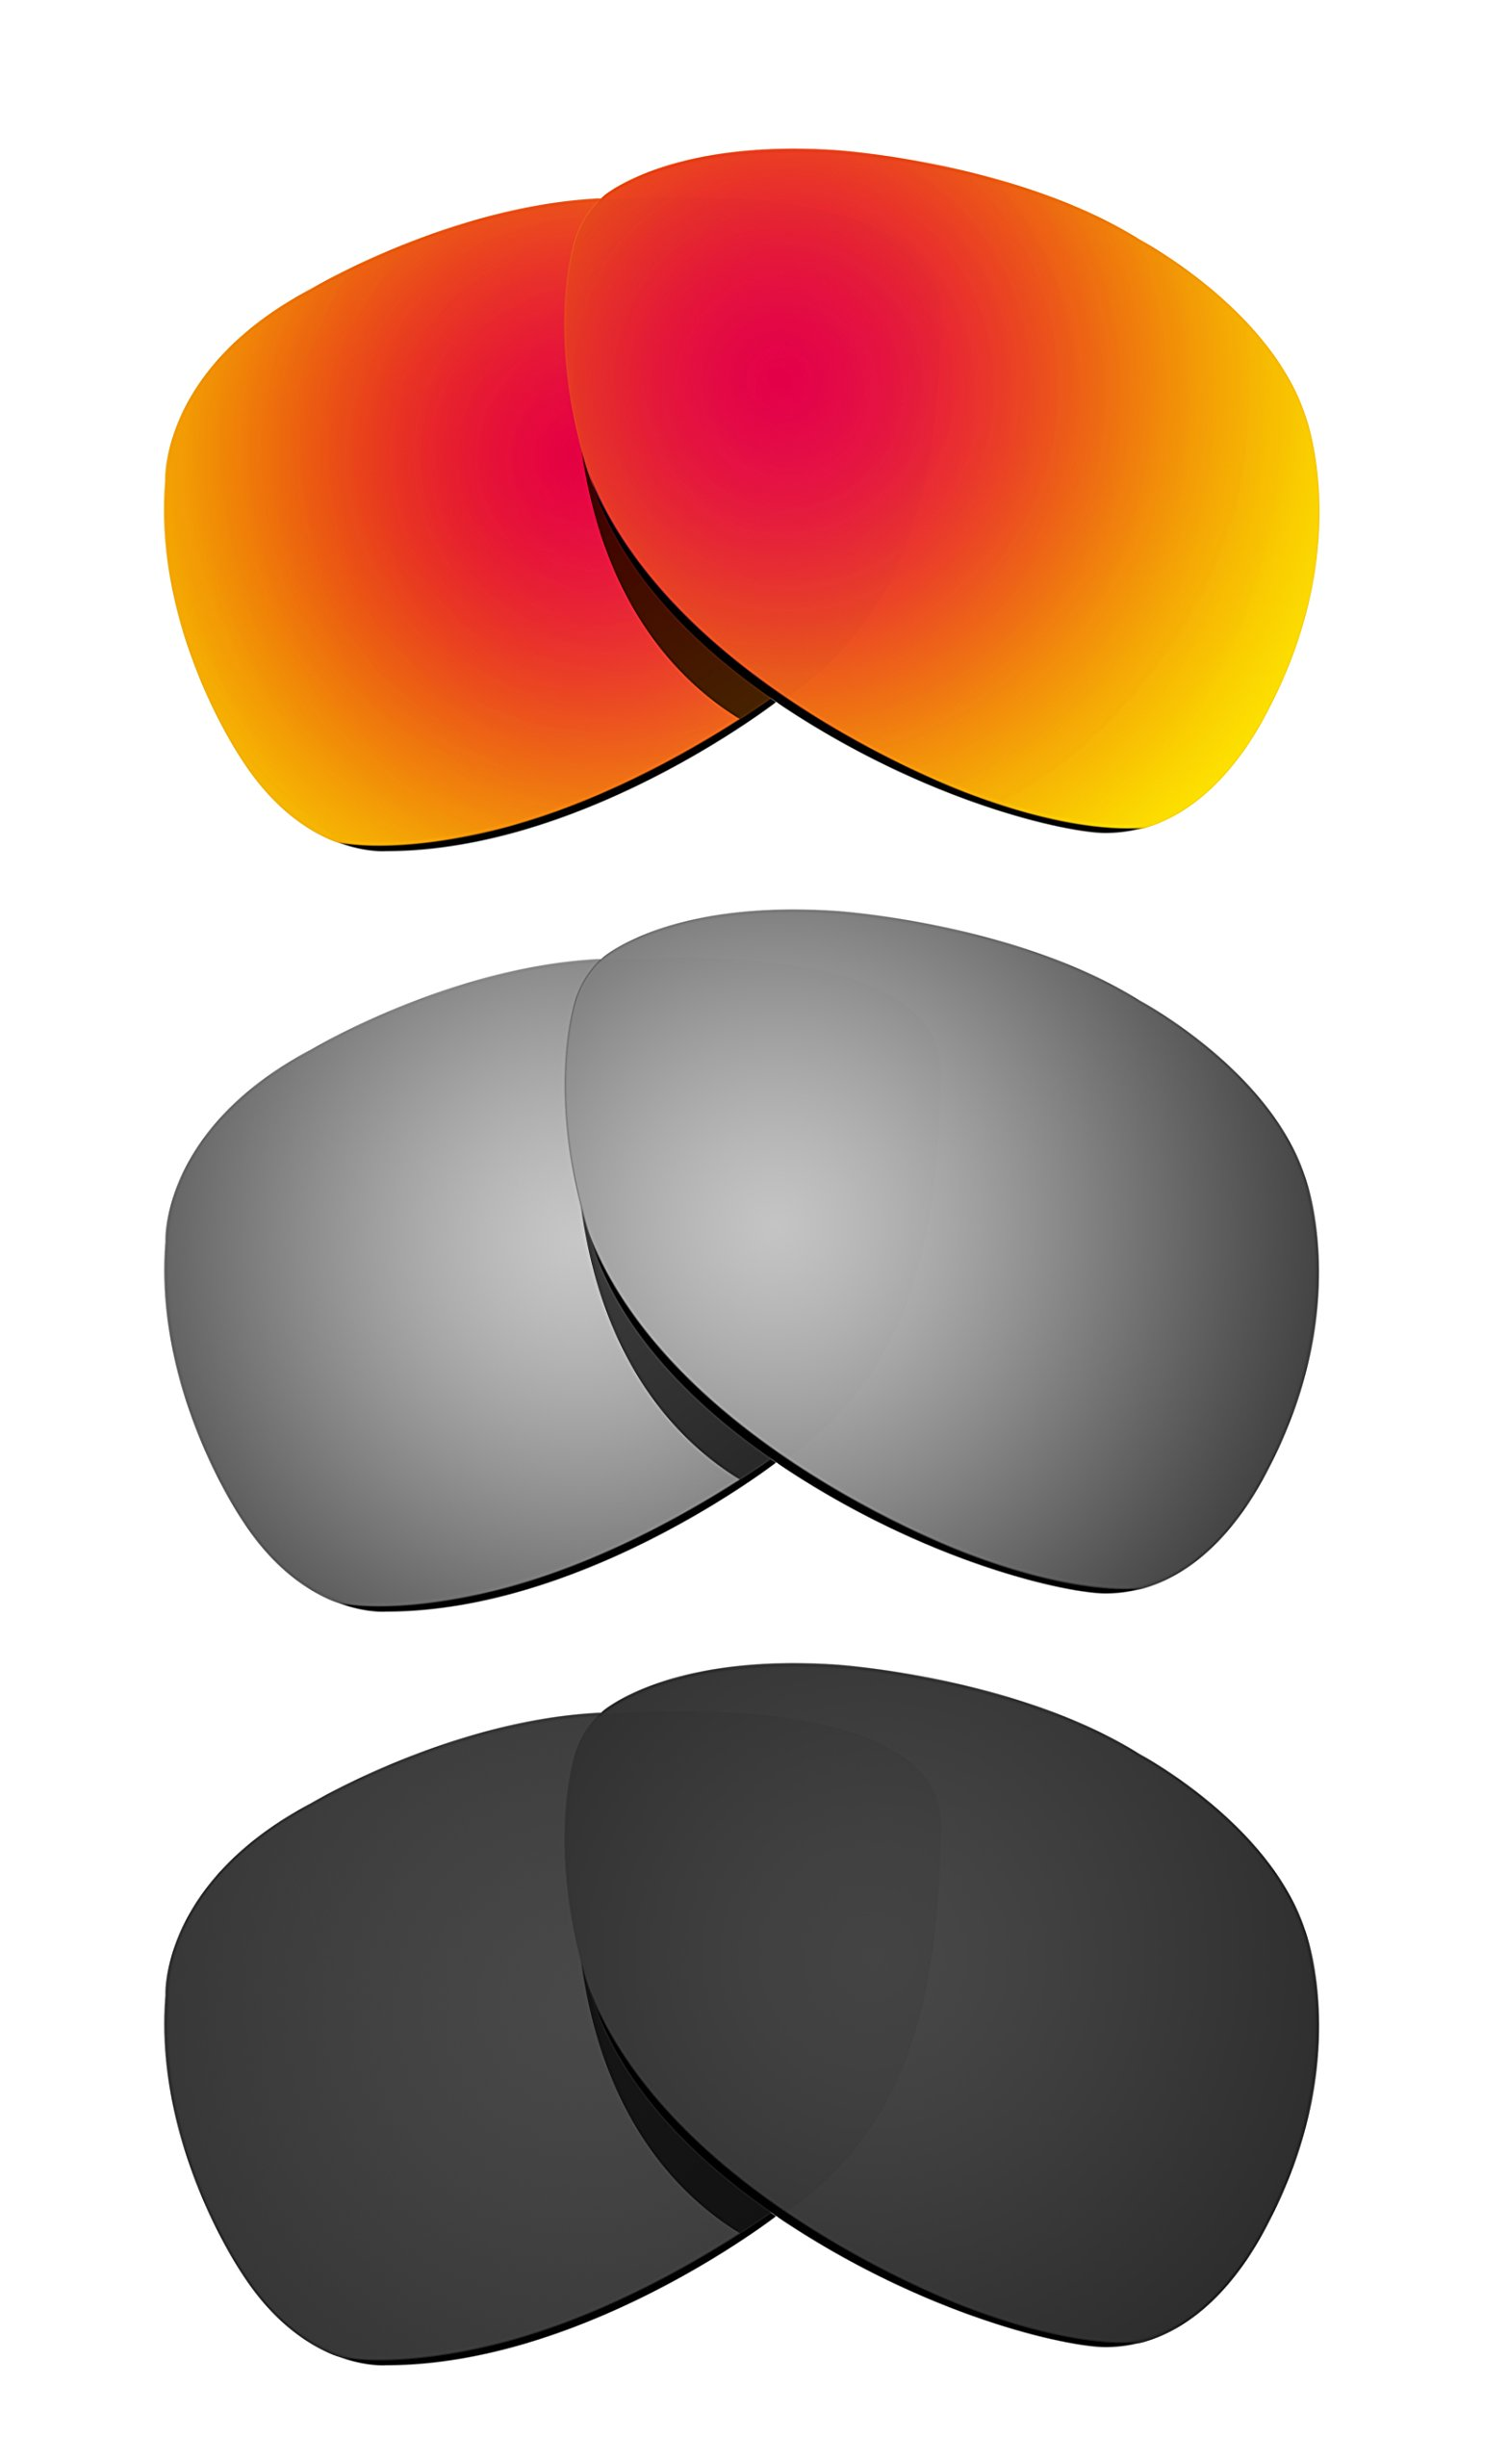 Littlebird4 3 Pairs 1.5mm Polarized Replacement Lenses for Oakley Crosshair Sunglasses - Multiple Options (Black+Silver+Fire Red)